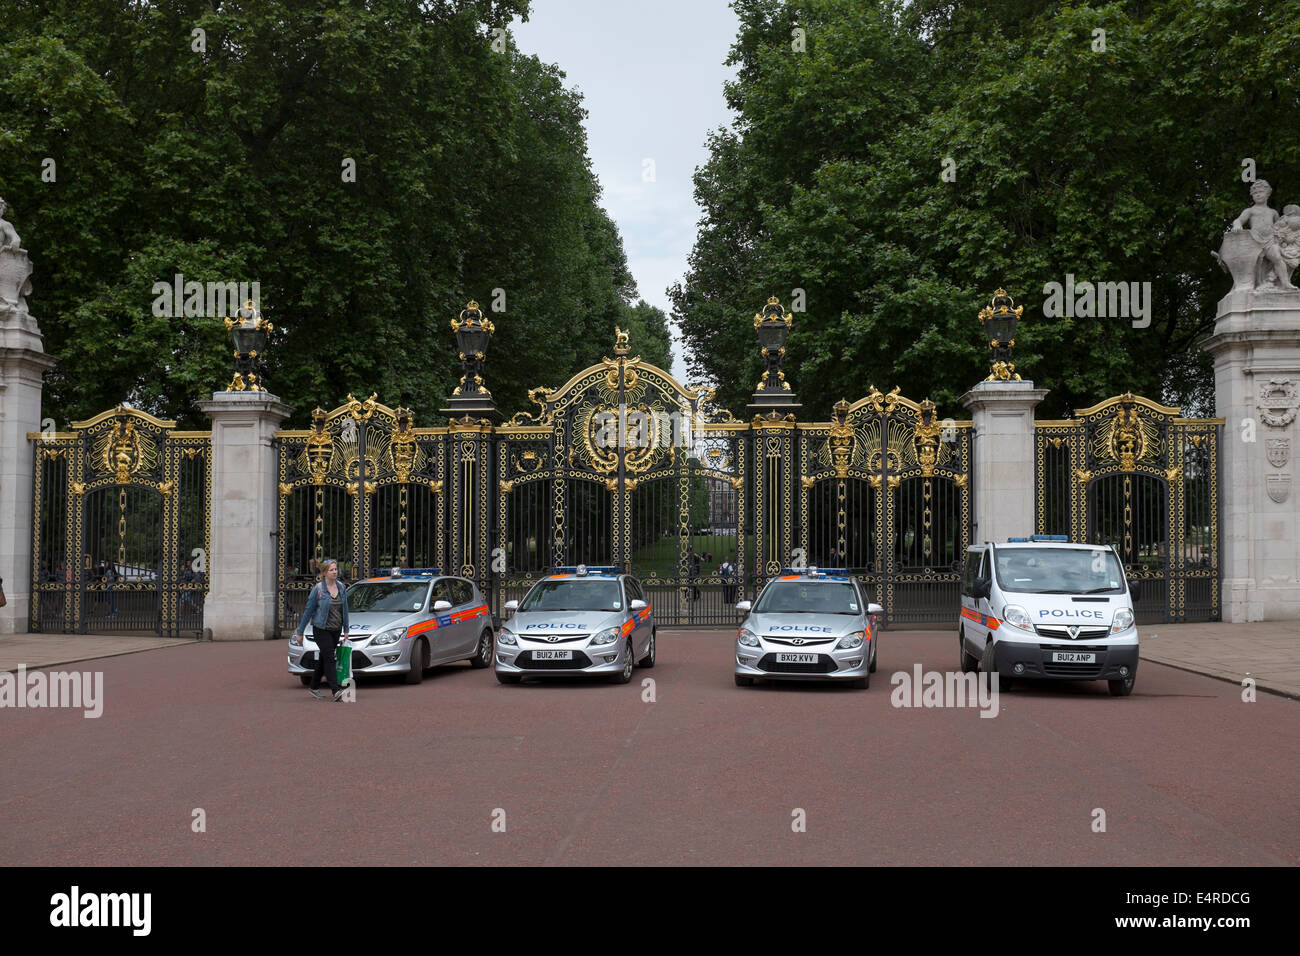 Police Cars Parked outside Green Park London - Stock Image